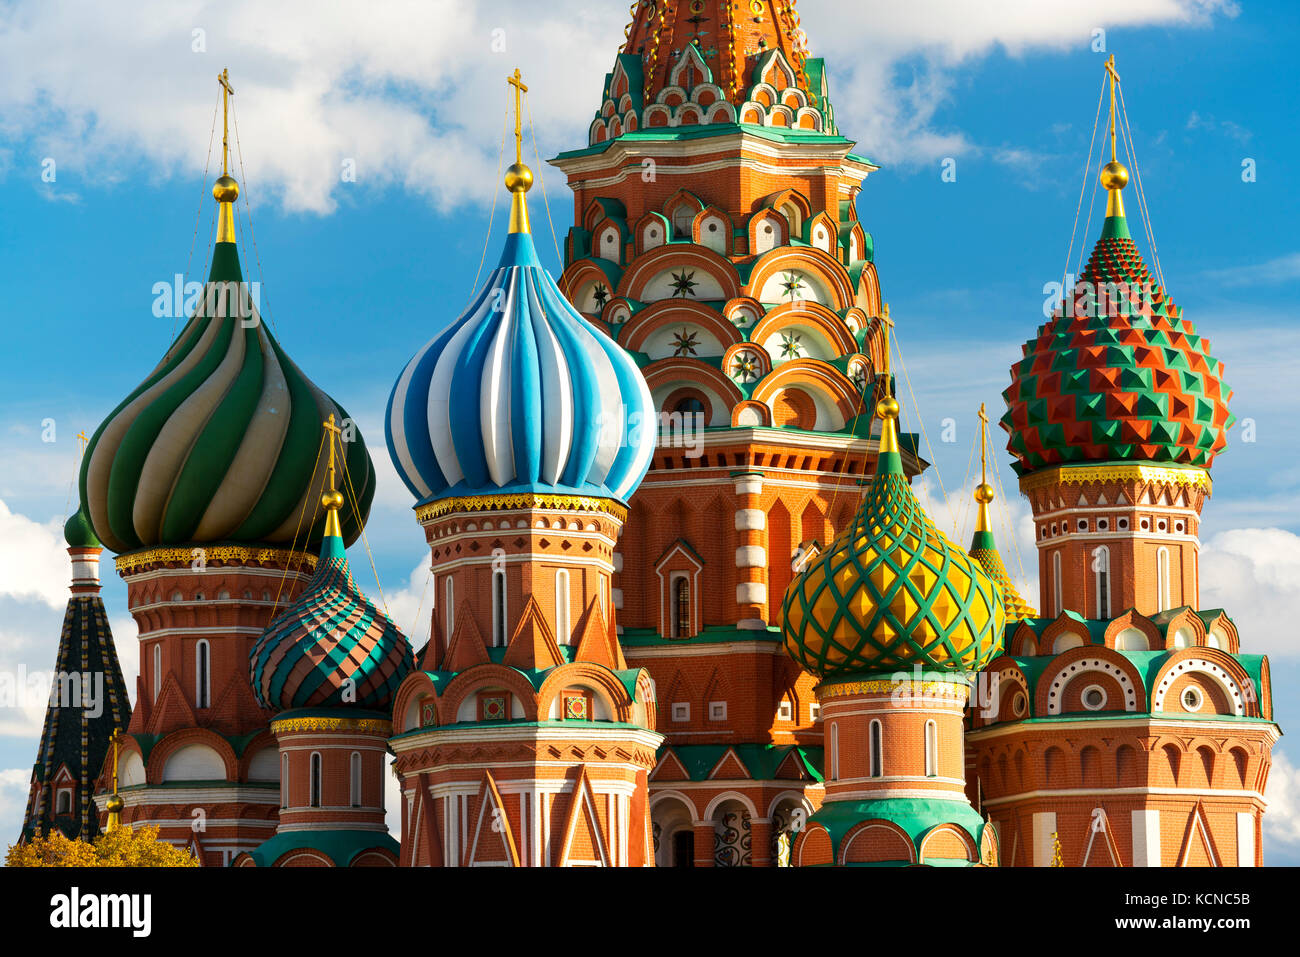 Saint Basil's Cathedral, Moscow, Russian Federation - Stock Image